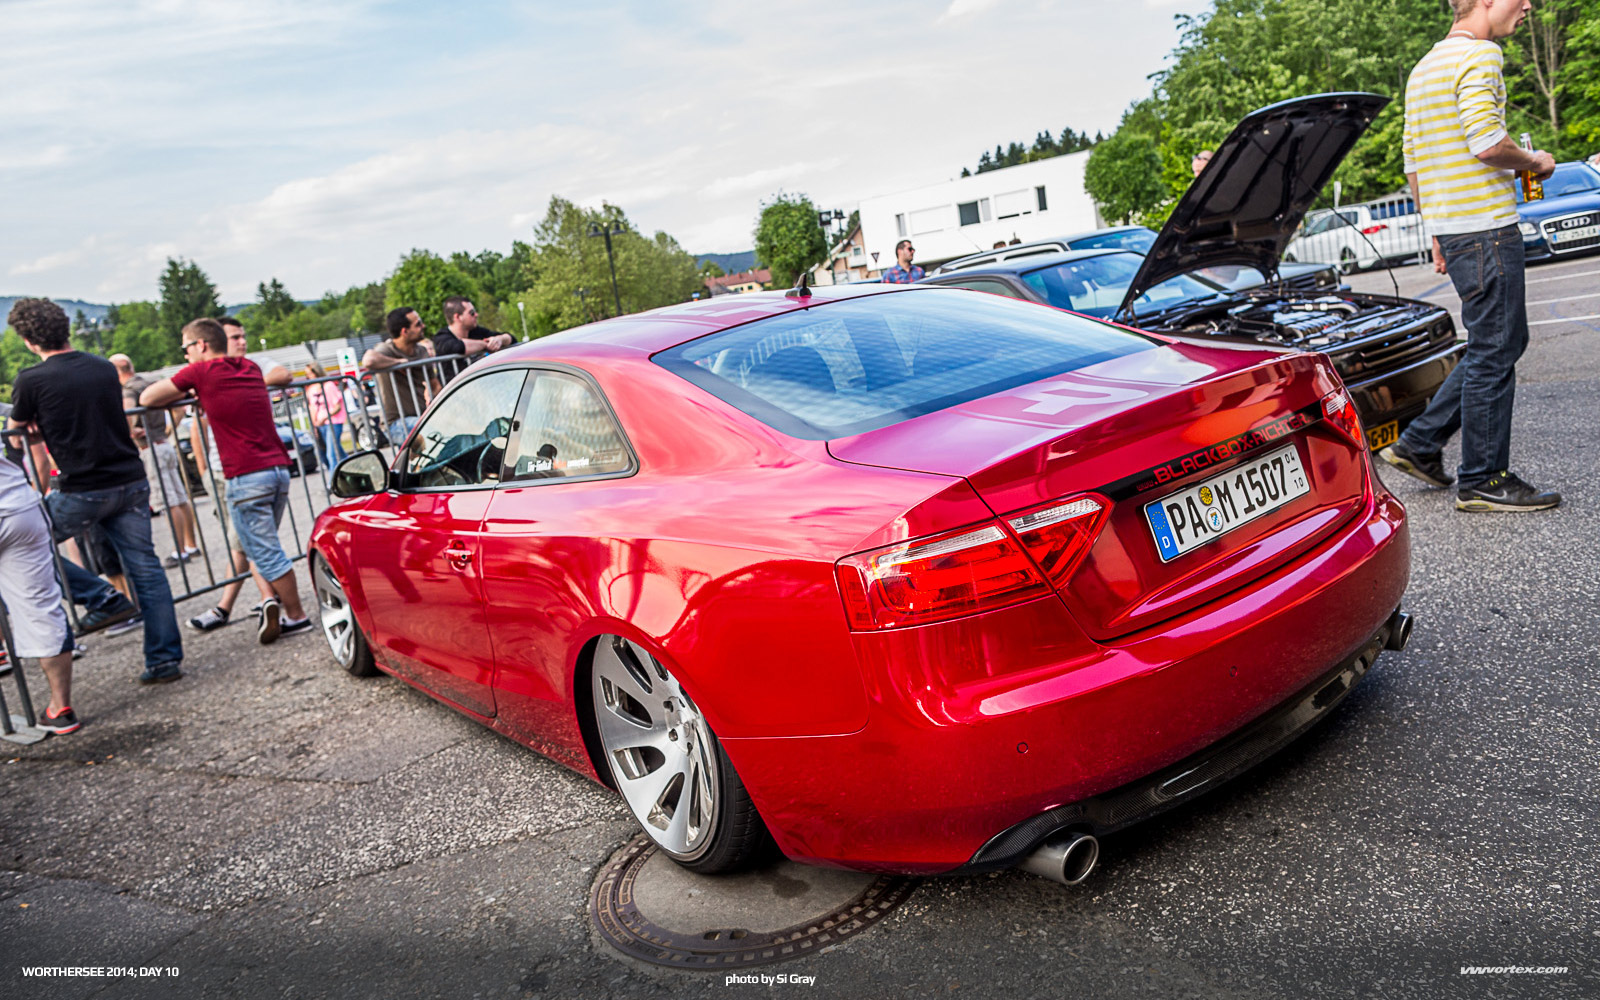 2014-Worthersee-Day-10-Si-Gray-379